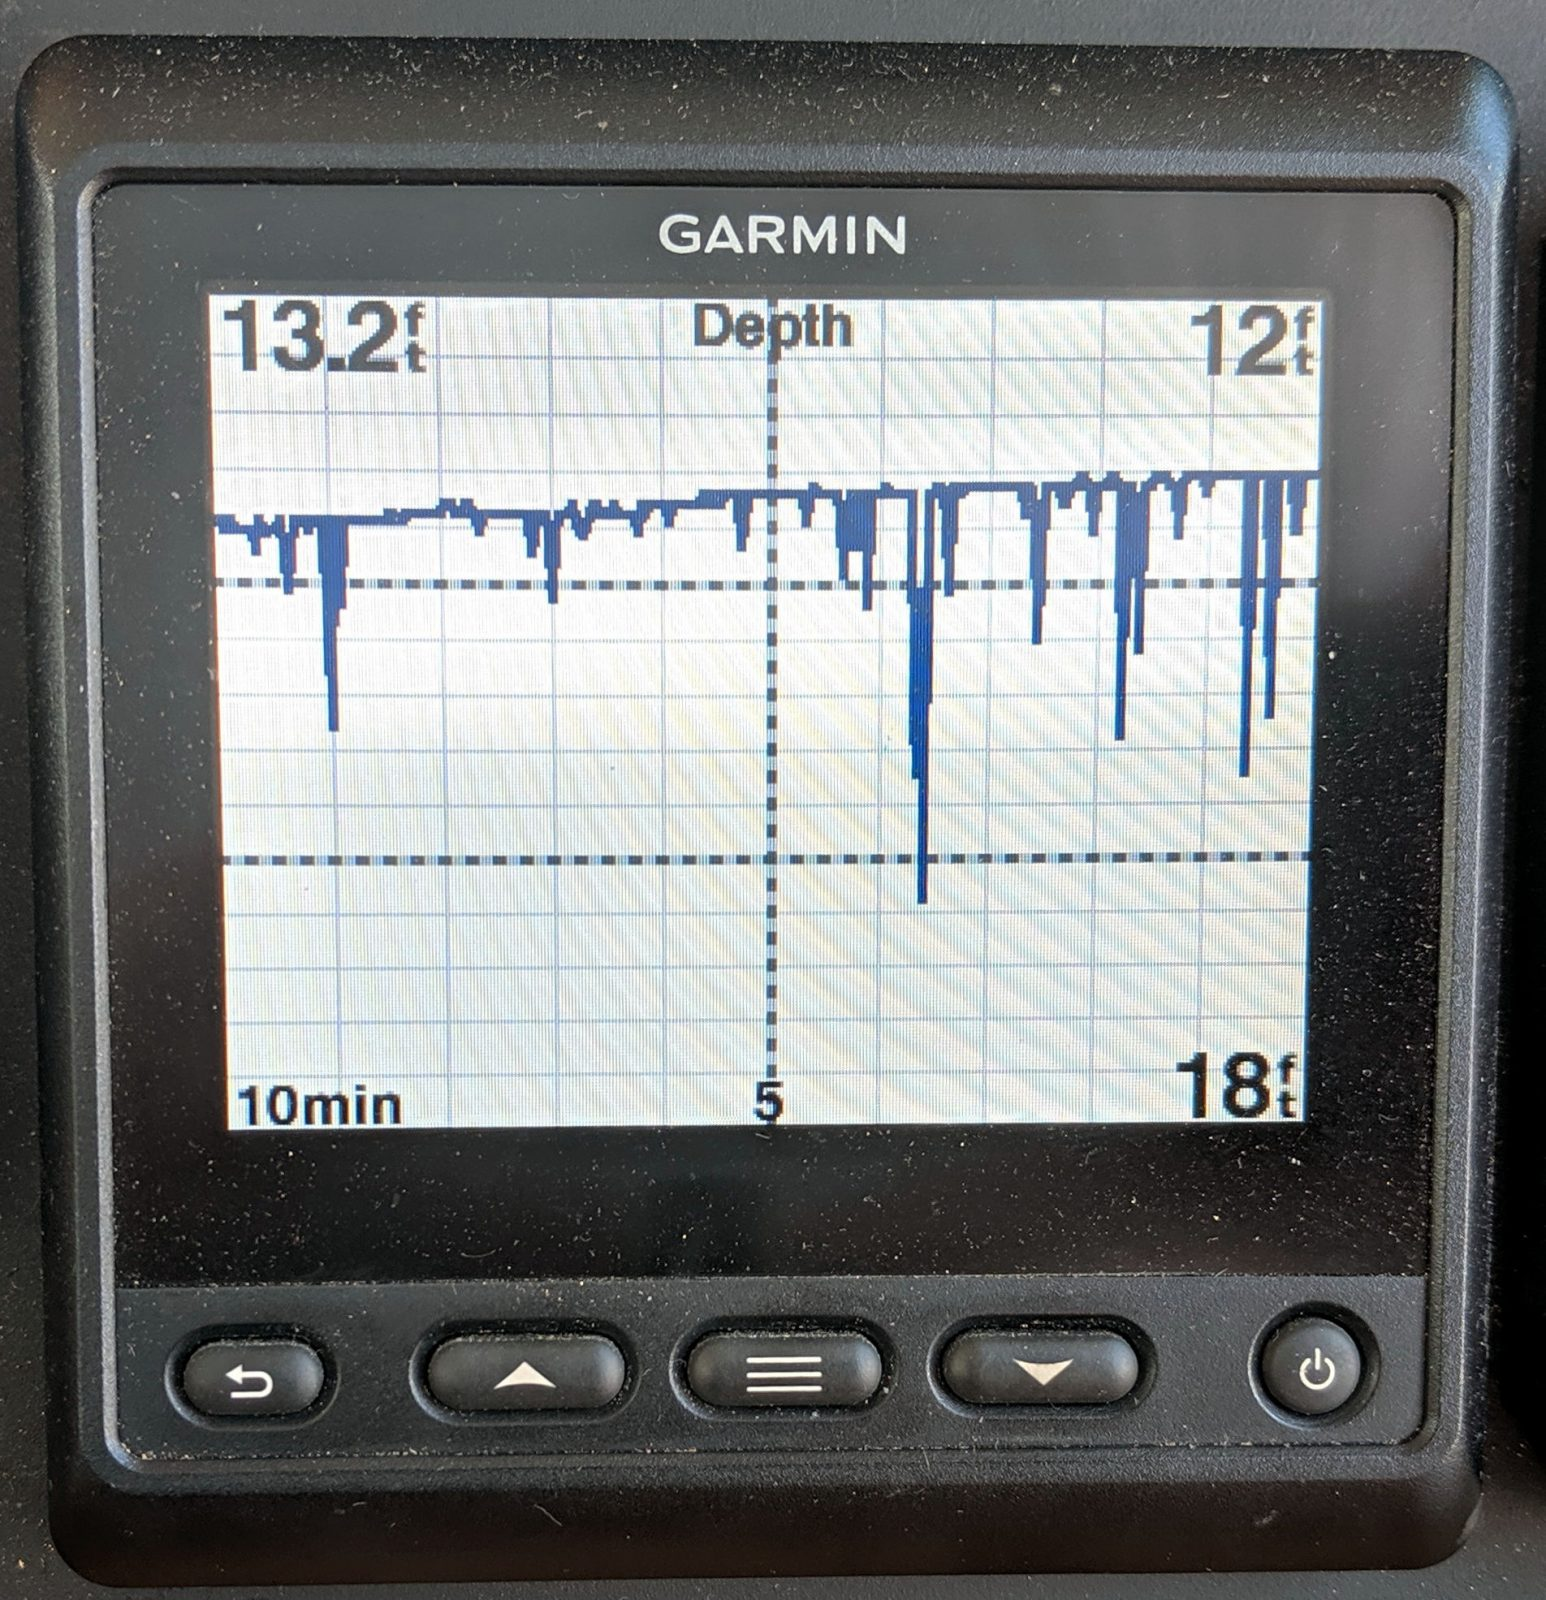 Garmin GMI20 Depth graph with adjustable time period